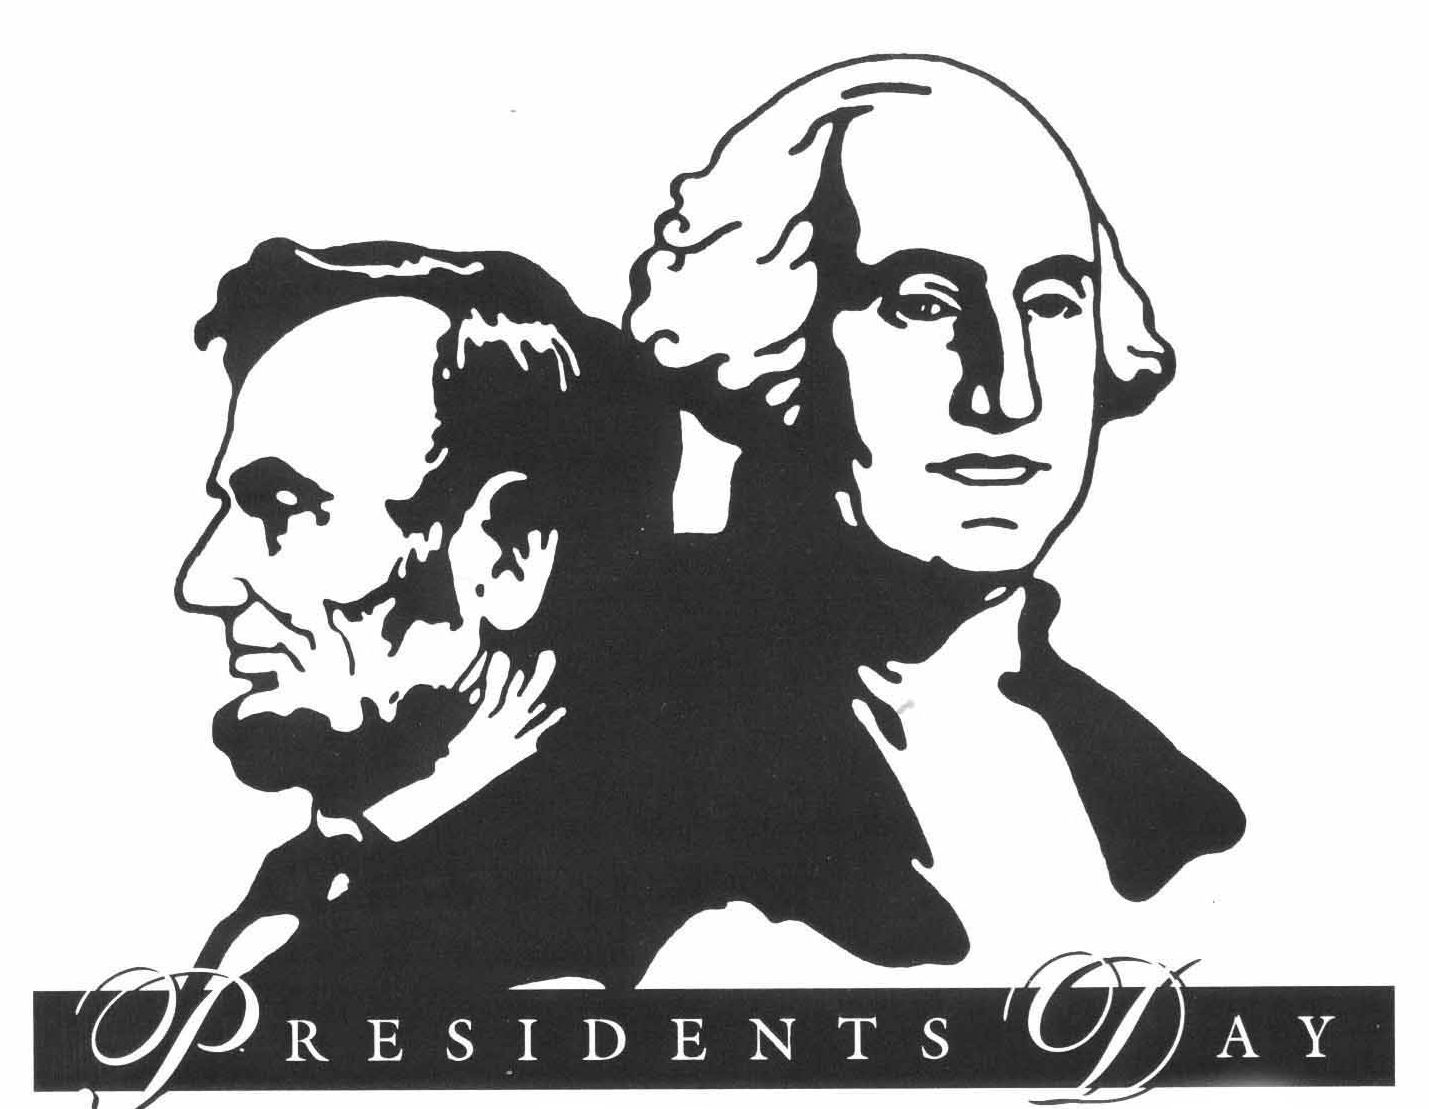 Washington day clipart image free download Guy church of Christ – (February 20th) President\'s Day image free download